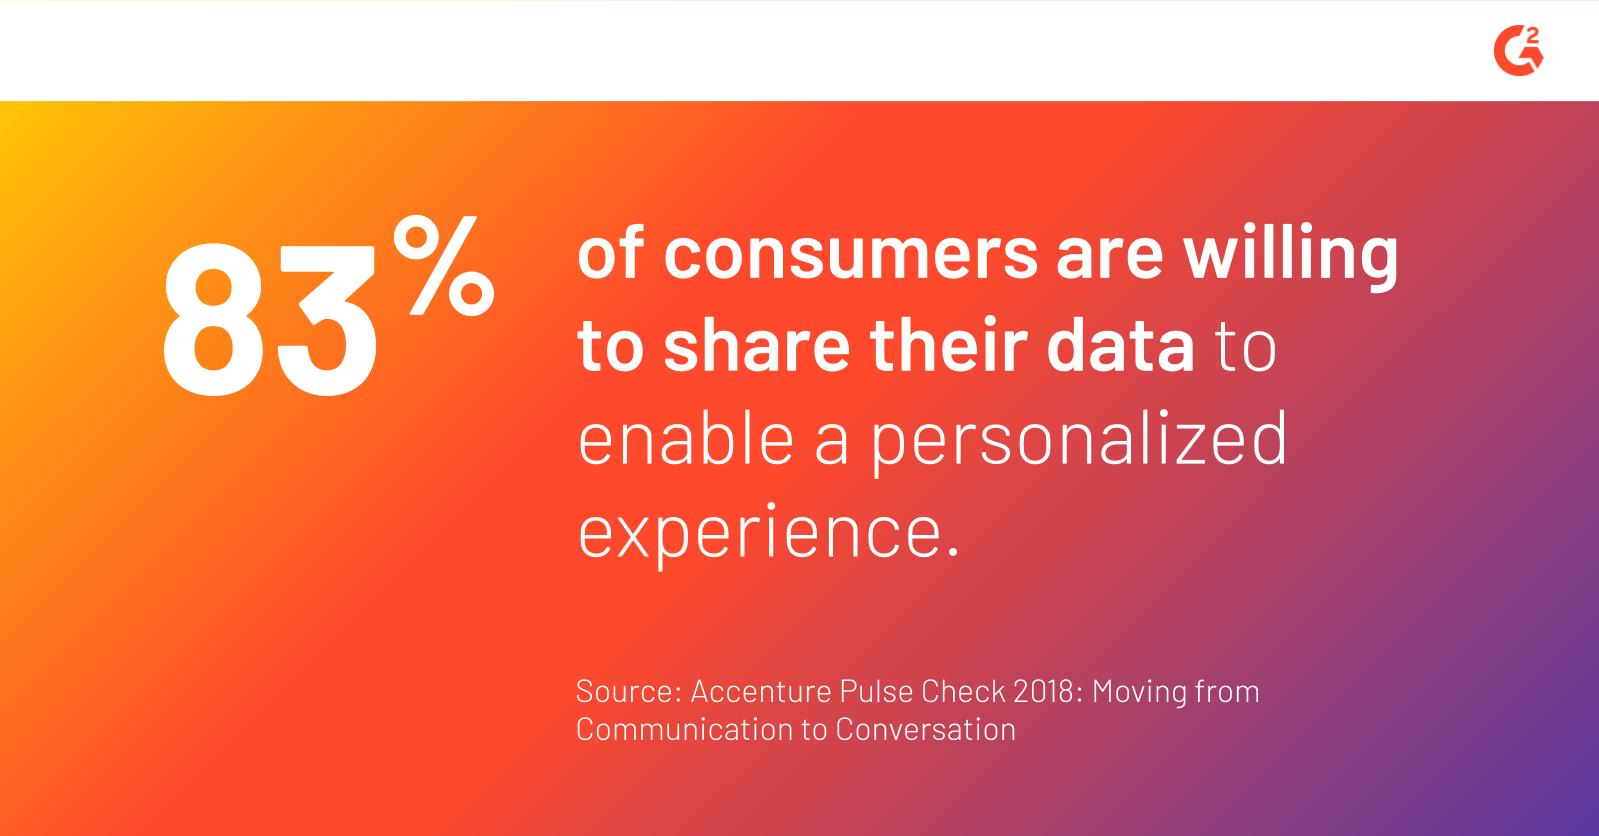 According to an Accenture survey, 83% of consumers are willing to share their date to enable a personalized experience